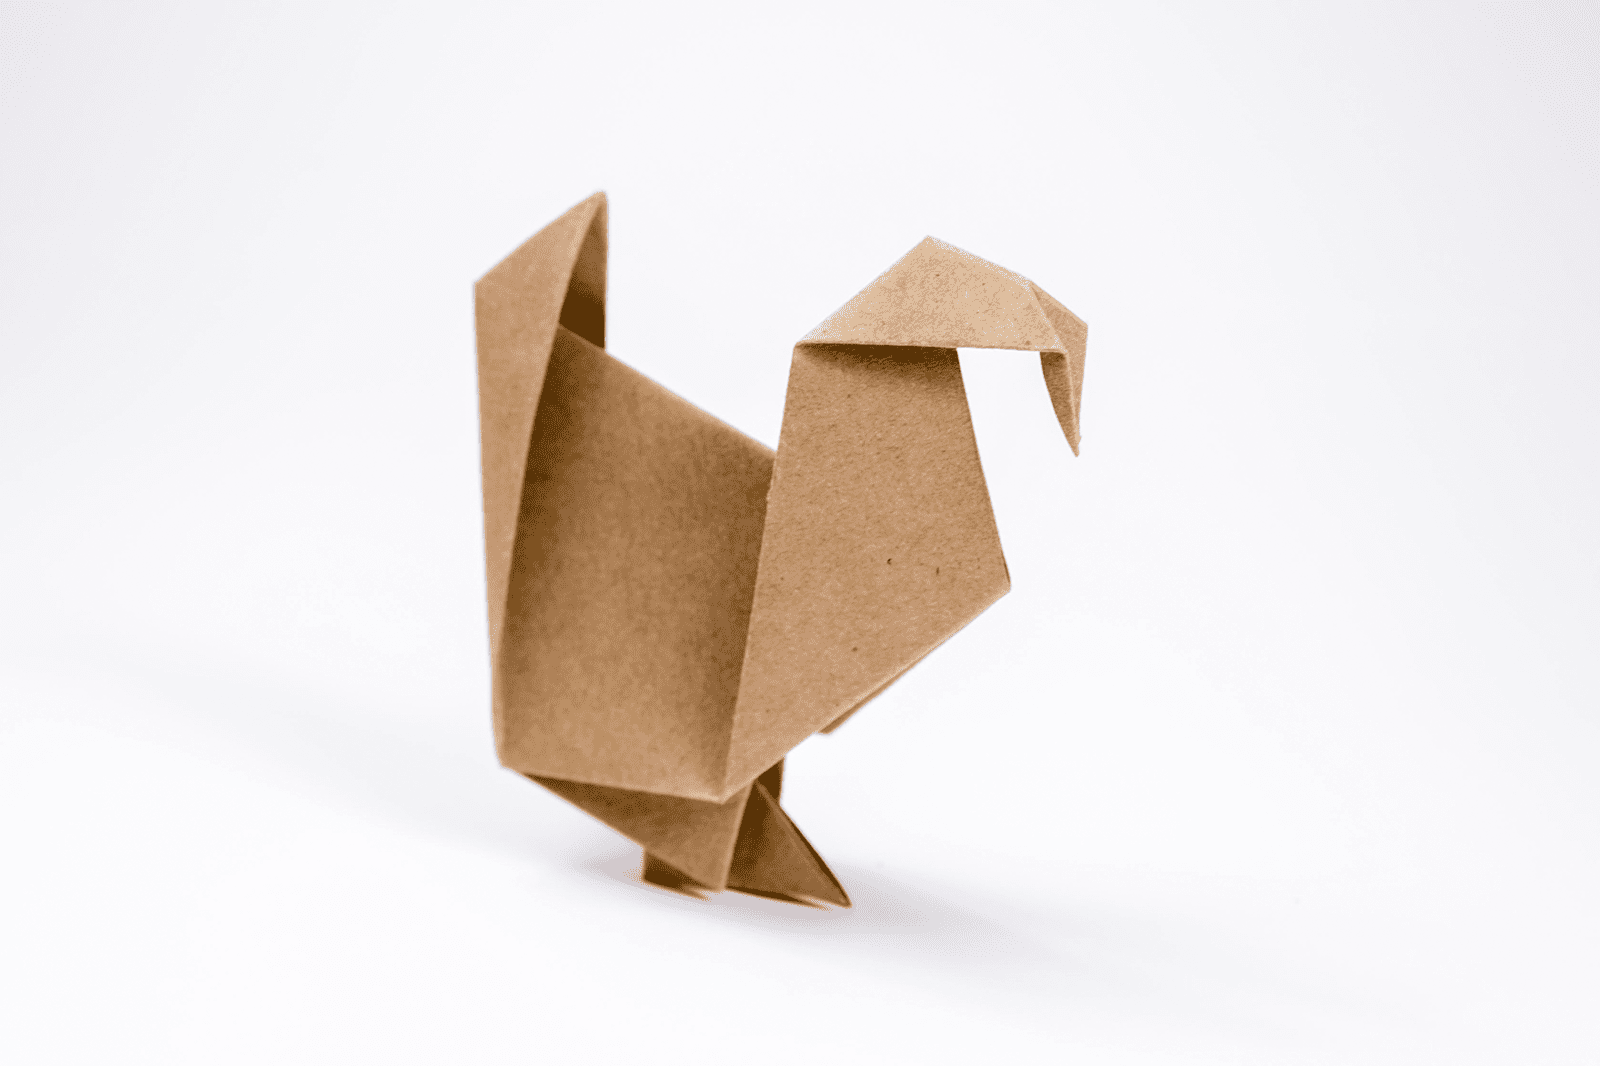 How to make an origami turkey origami birds easy origami and learn how to make an easy origami turkey with this simple step by step jeuxipadfo Image collections